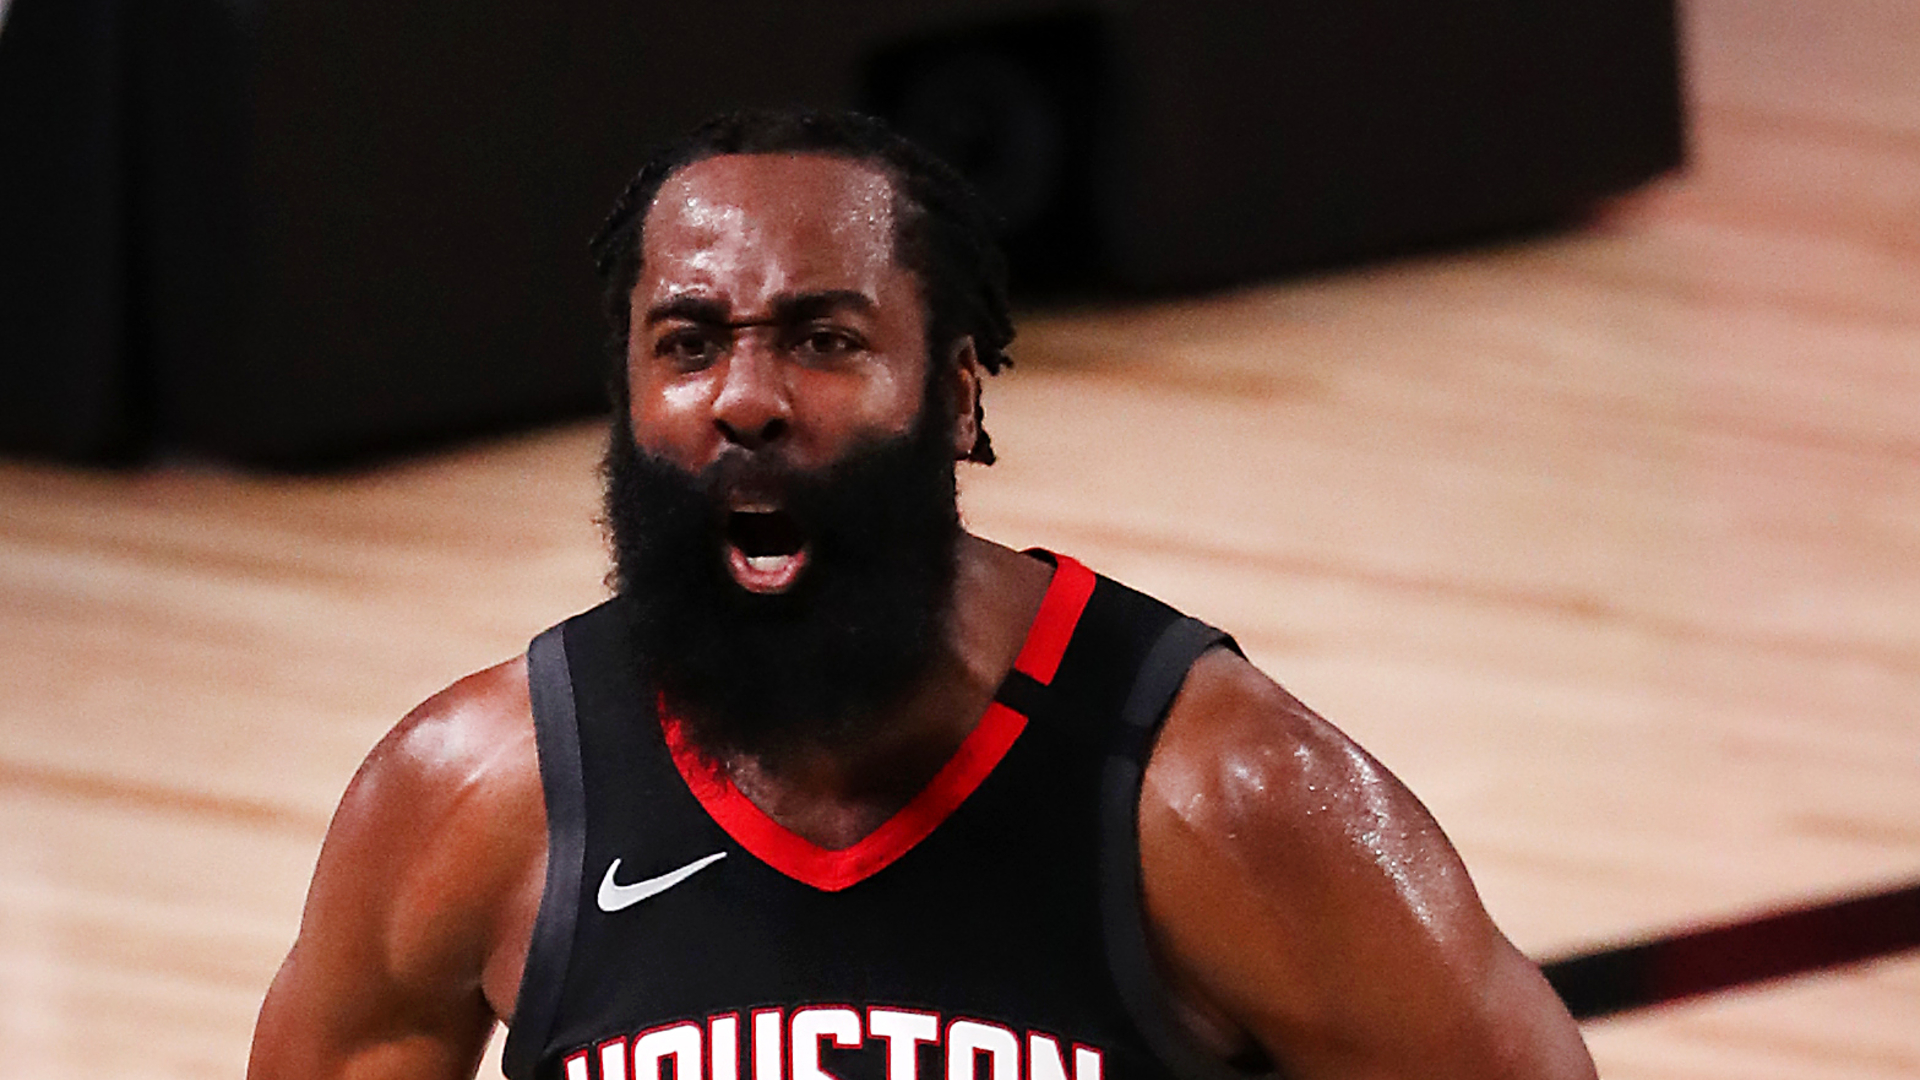 James Harden trade rumors: Rockets star reportedly contemplating reunion with Kevin Durant in Brooklyn